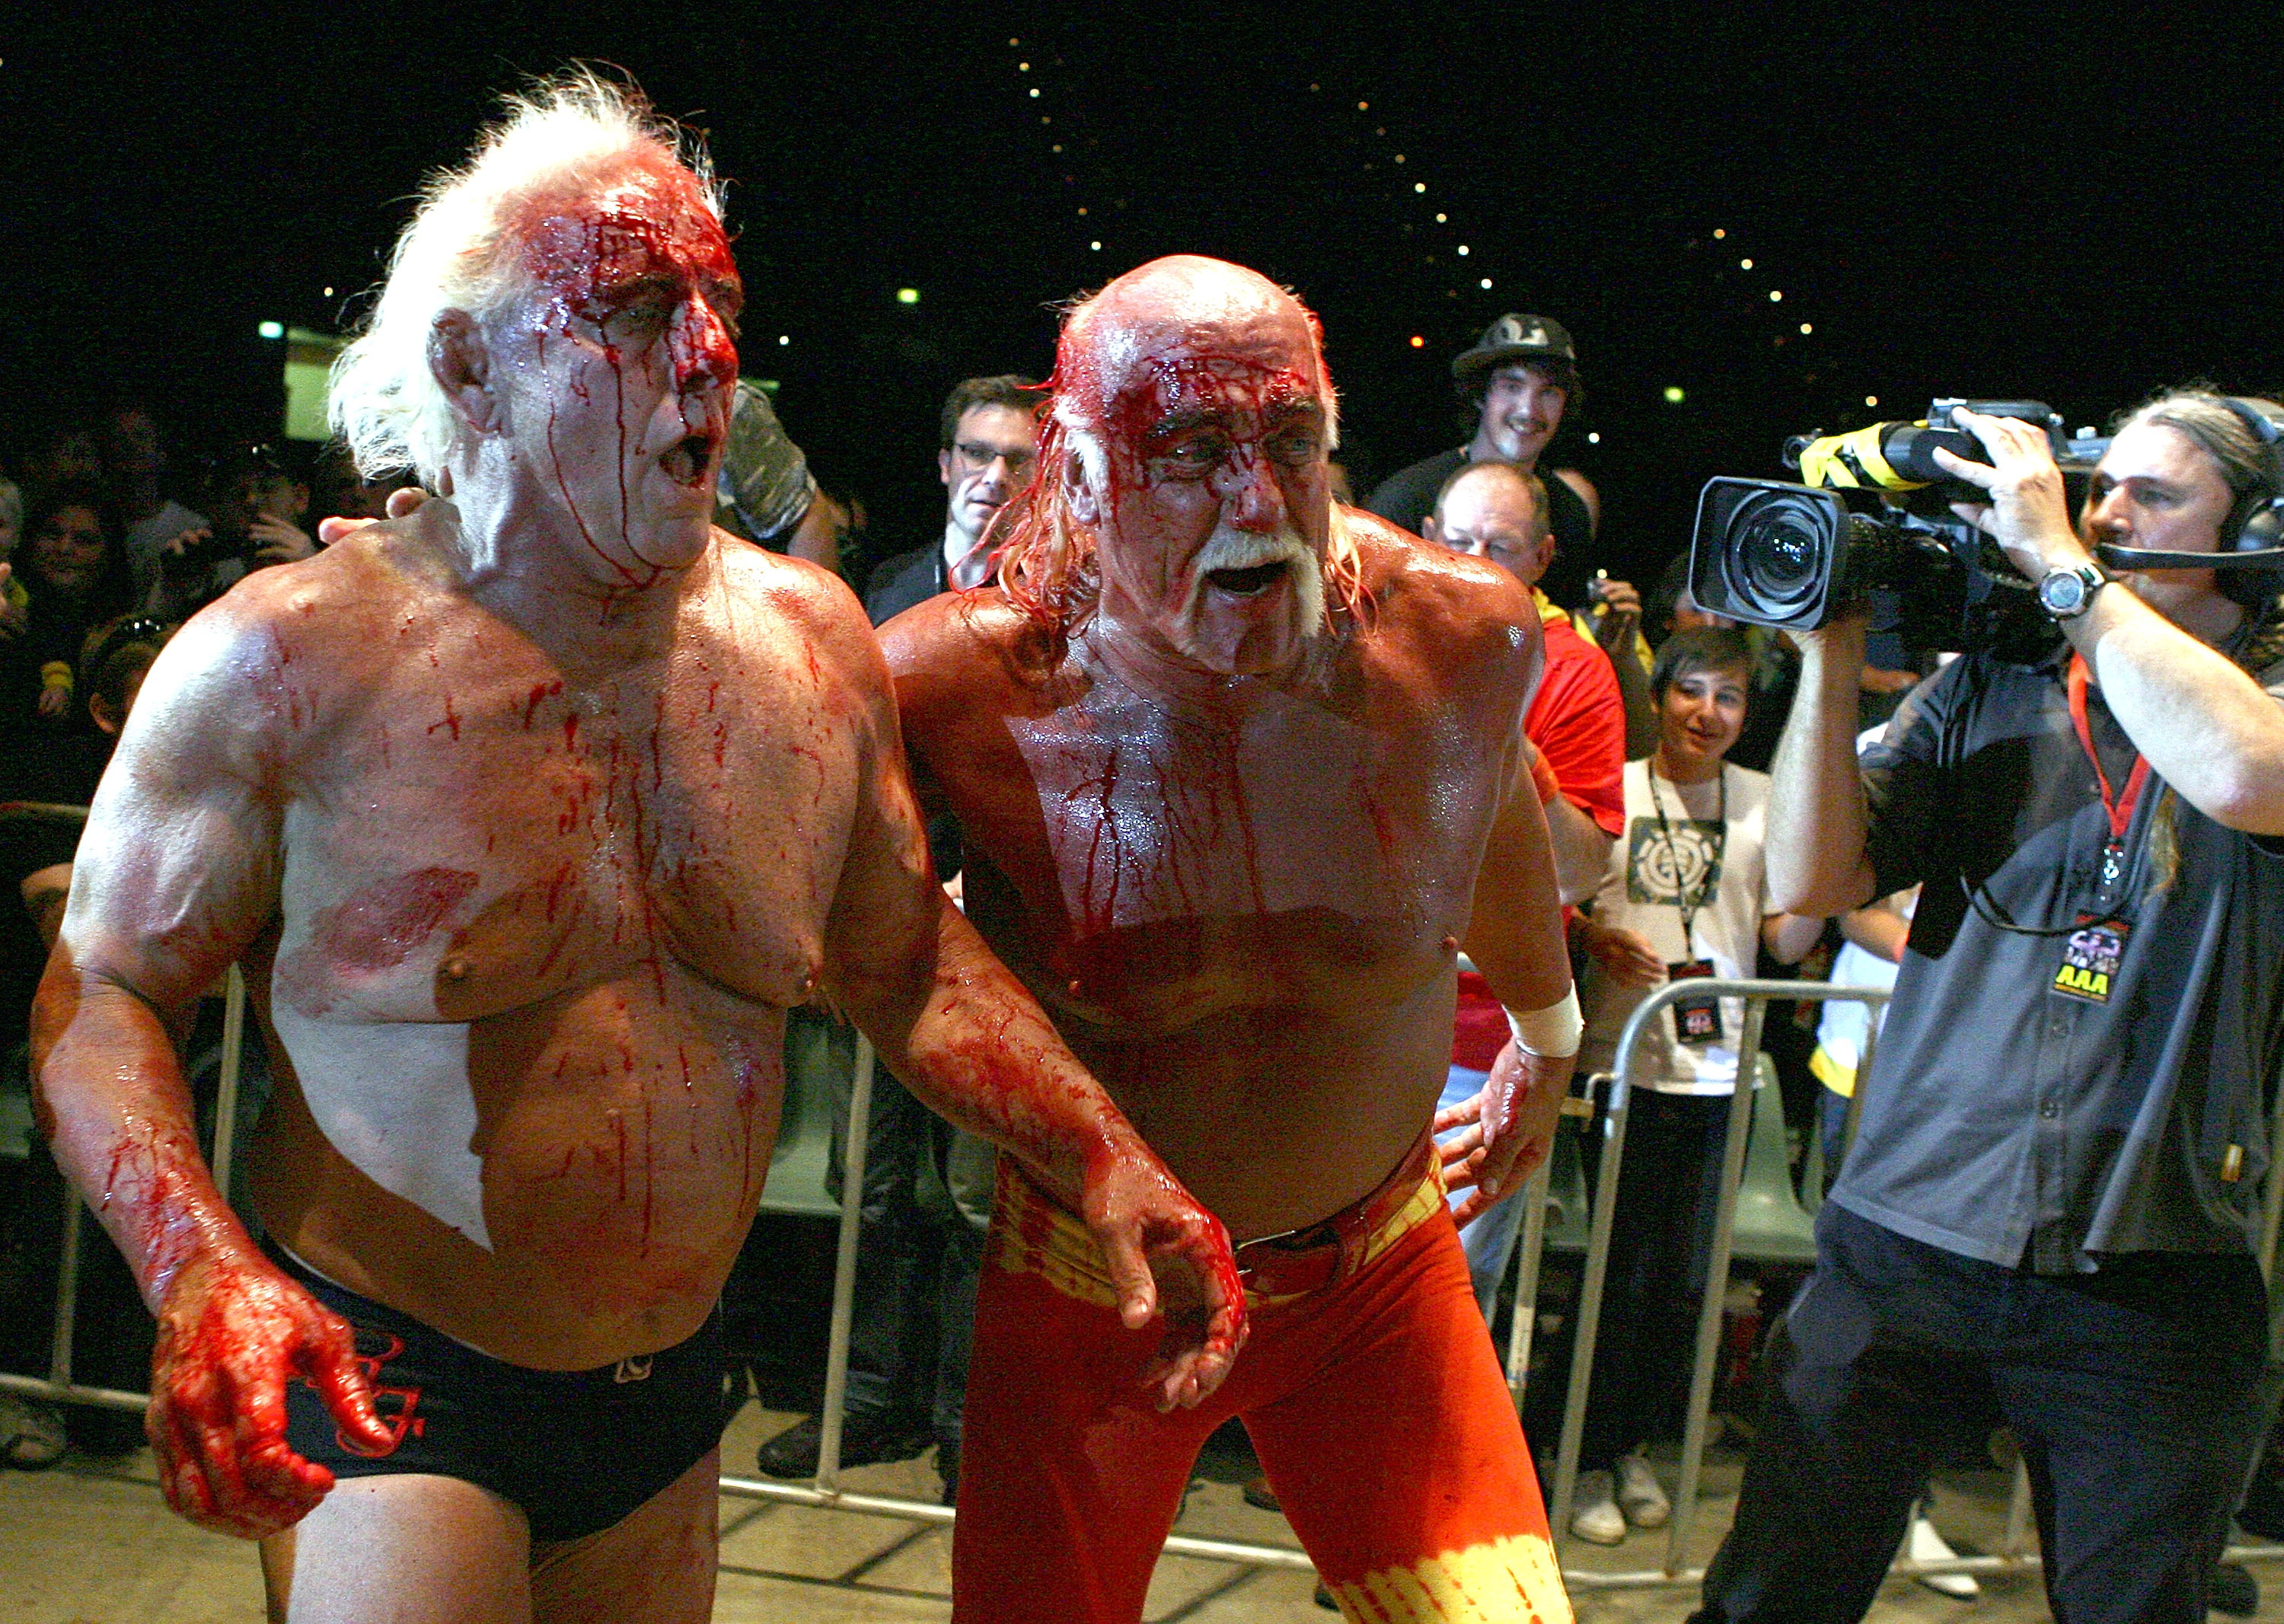 PERTH, AUSTRALIA - NOVEMBER 24:  Hulk Hogan guides Rick Flair back to the ring during the Hulkamania Tour at the Burswood Dome on November 24, 2009 in Perth, Australia.  (Photo by Paul Kane/Getty Images)